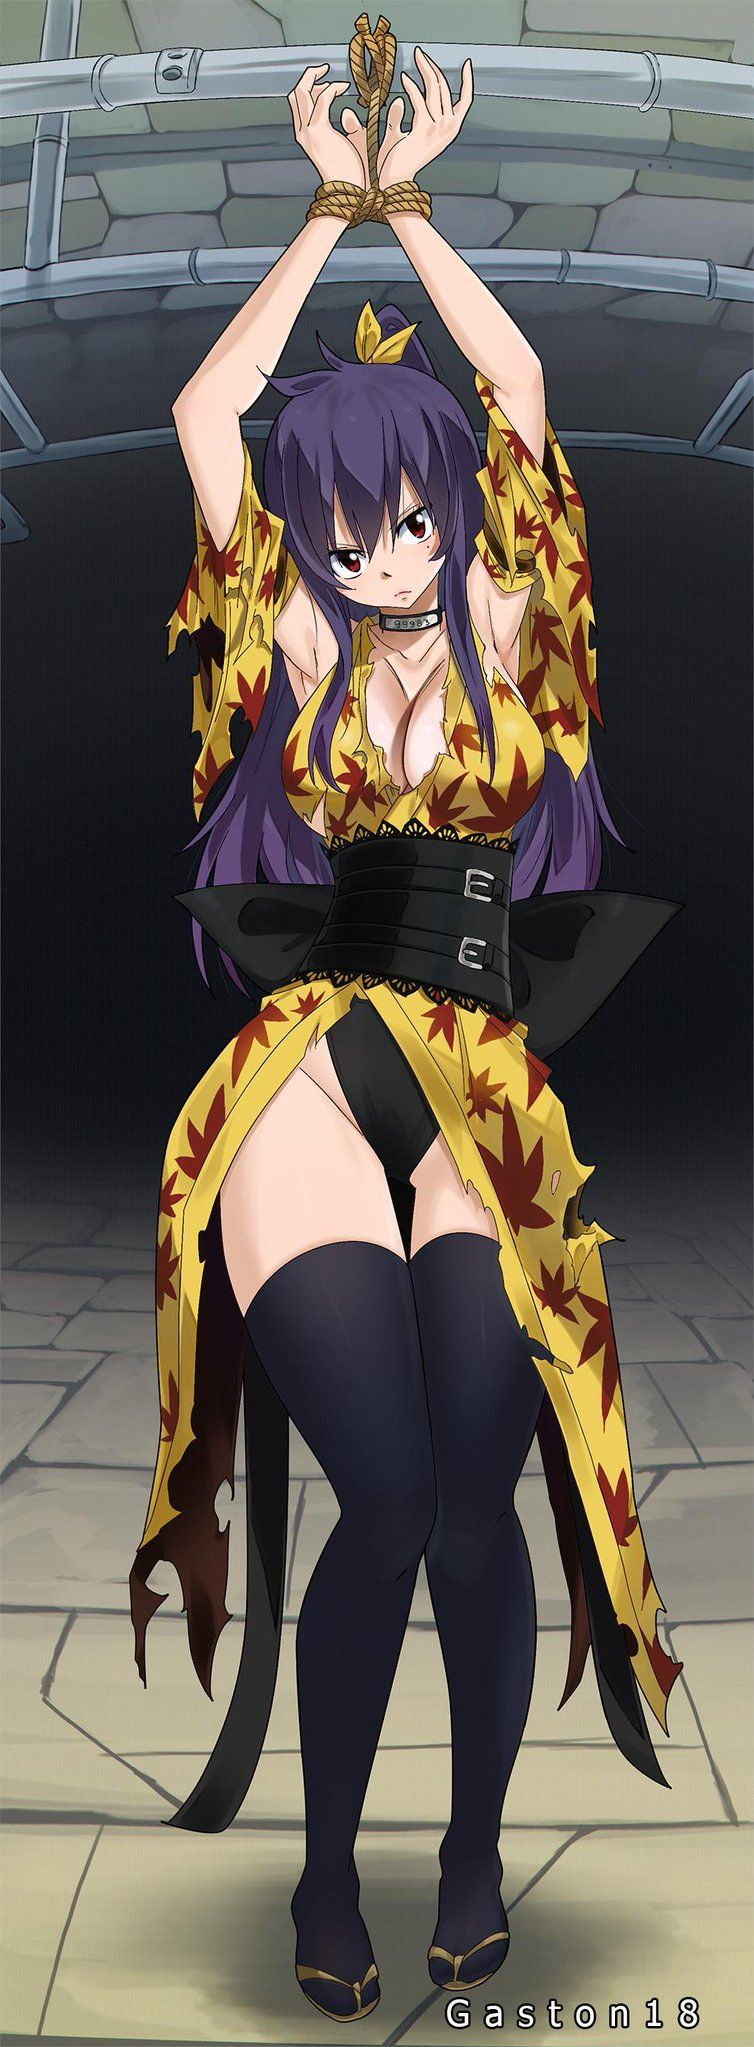 Pin by Layla Ayane on Anime Anime, 3 characters, Edens zero